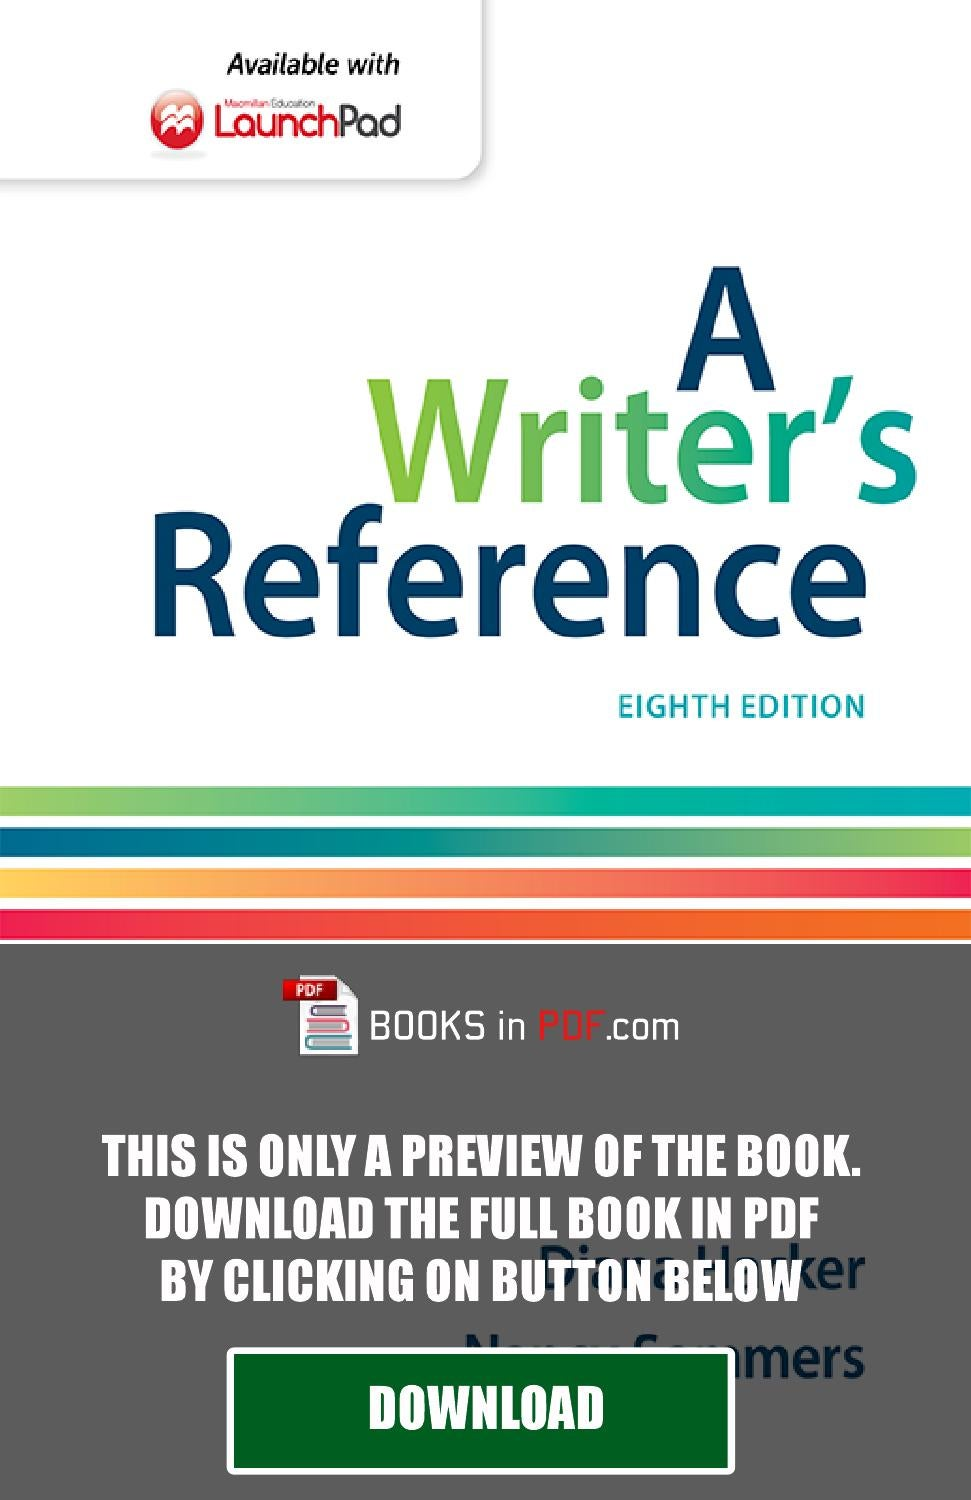 A Writer's Reference 8th Edition by Diana Hacker PDF Free by Luis York -  issuu